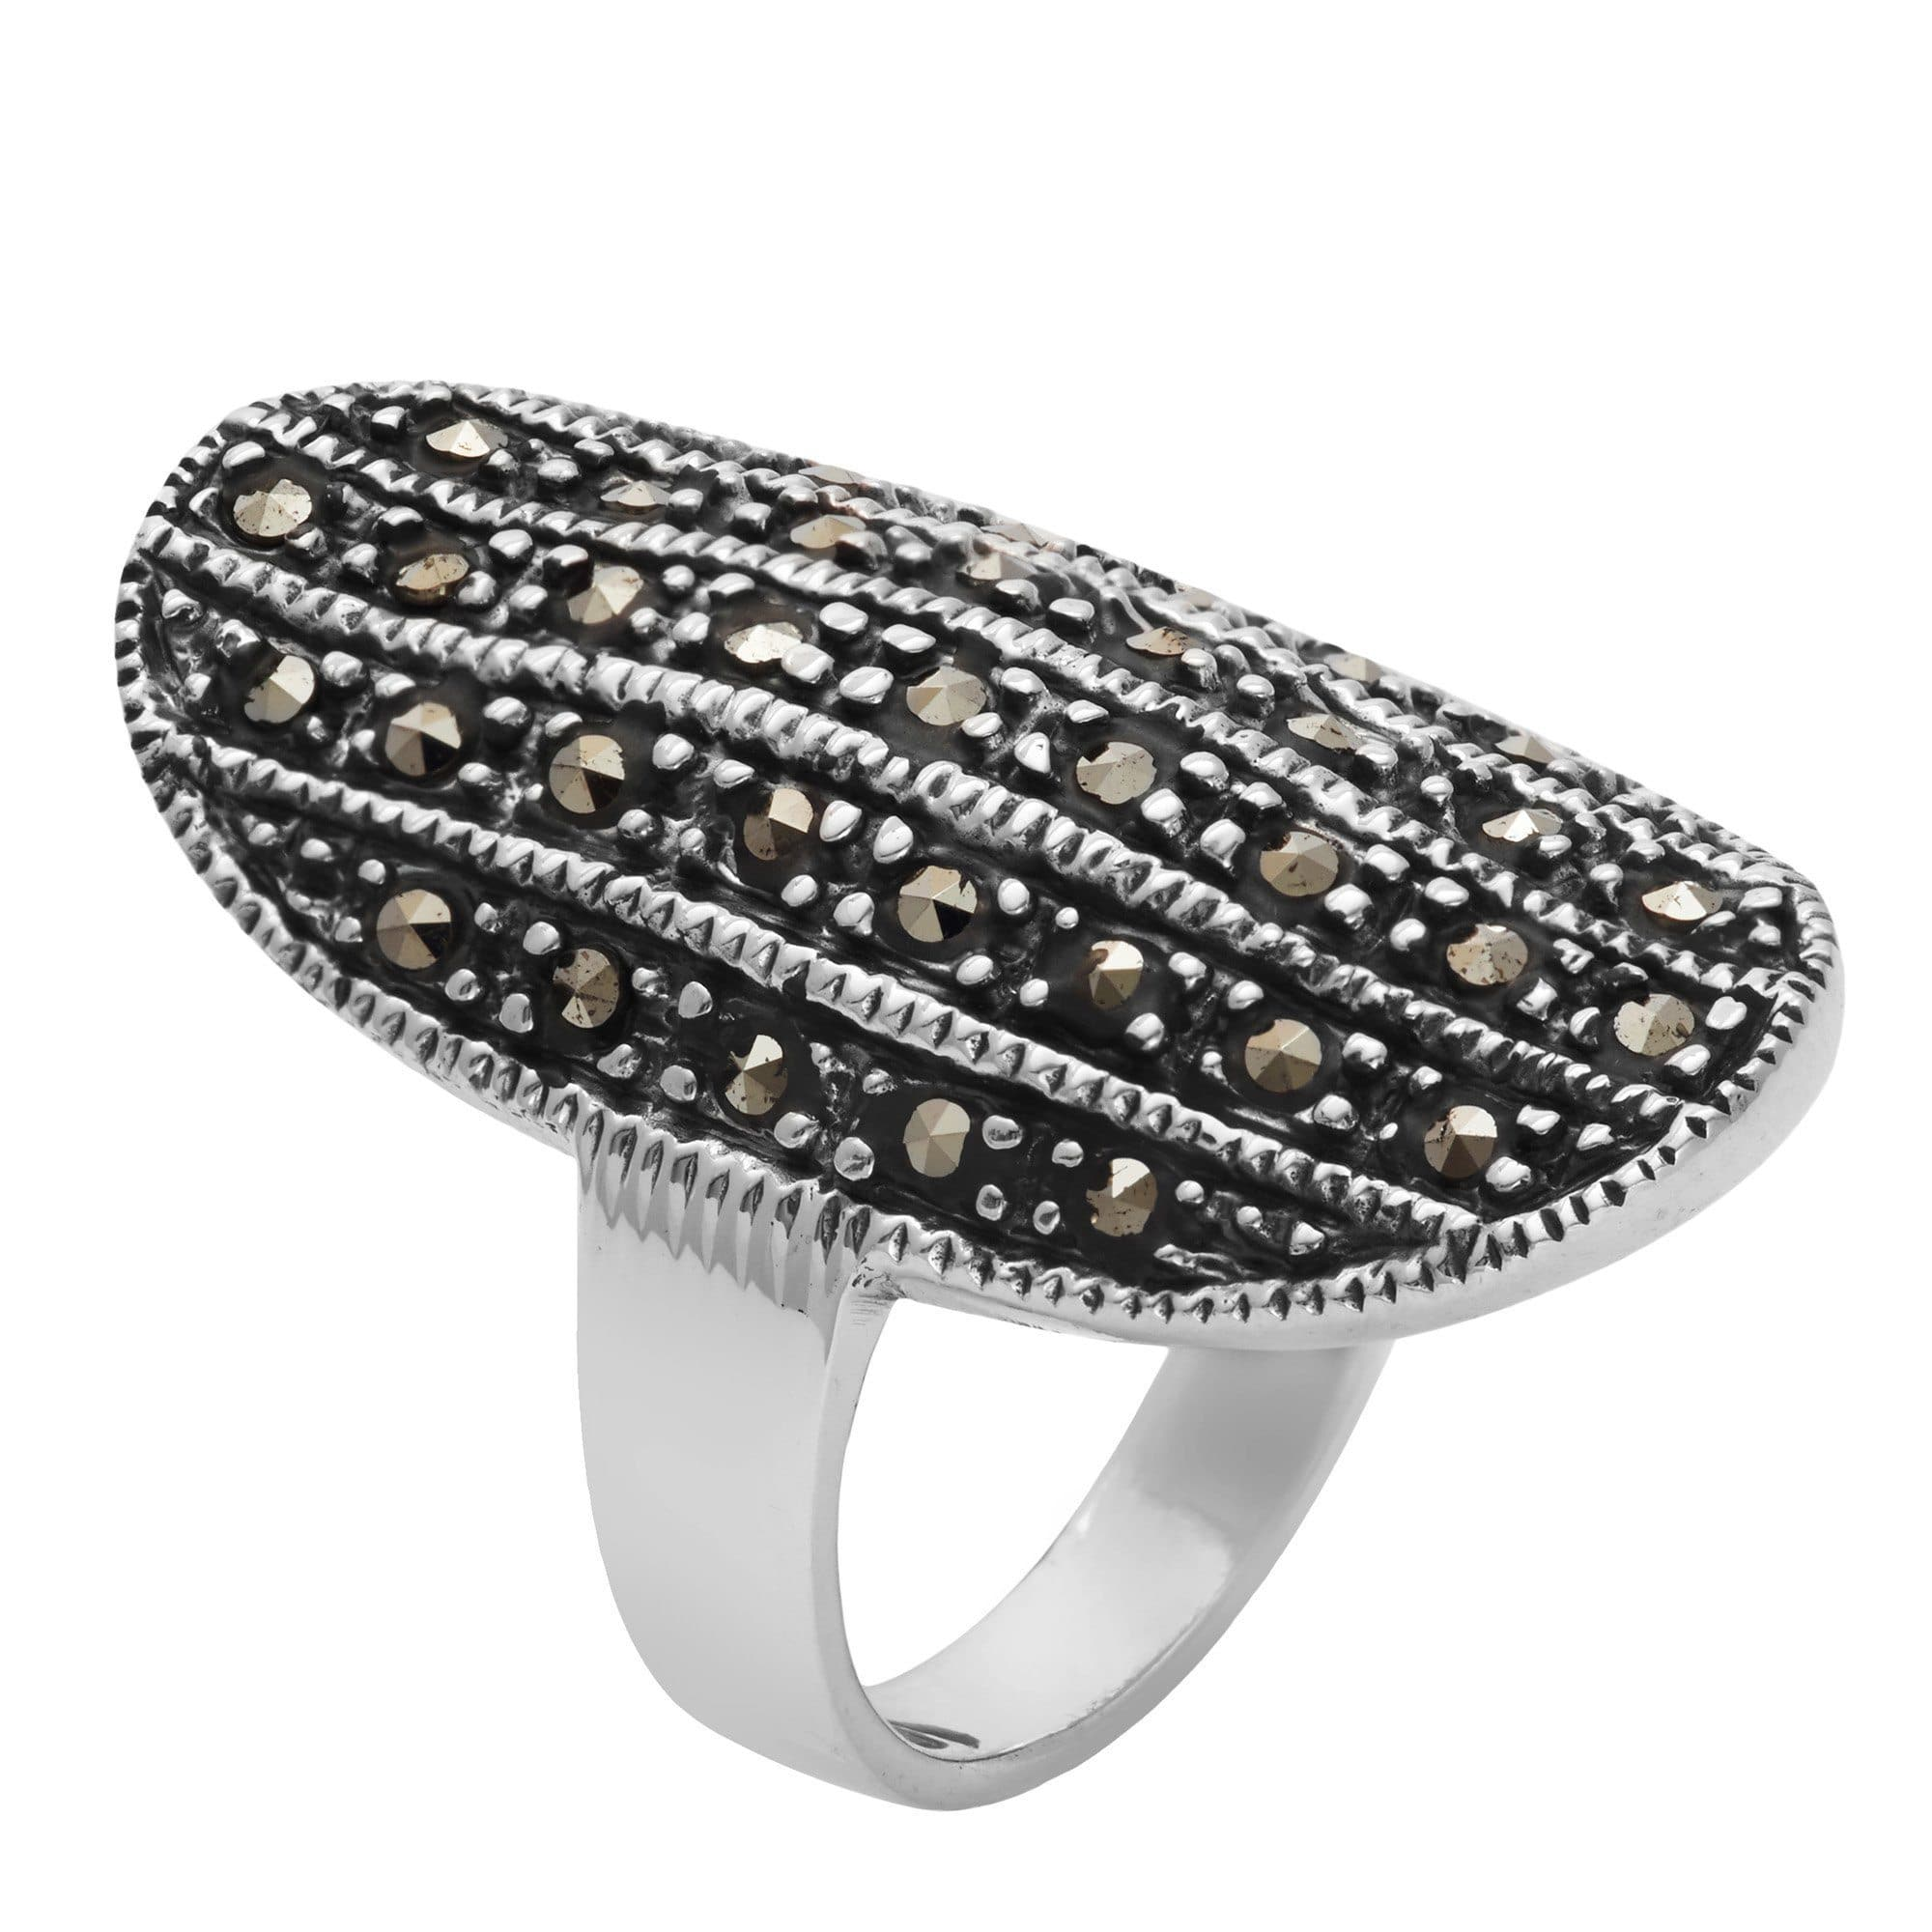 c9994174feda9 Sterling Silver Rings Page 4 - Silverly